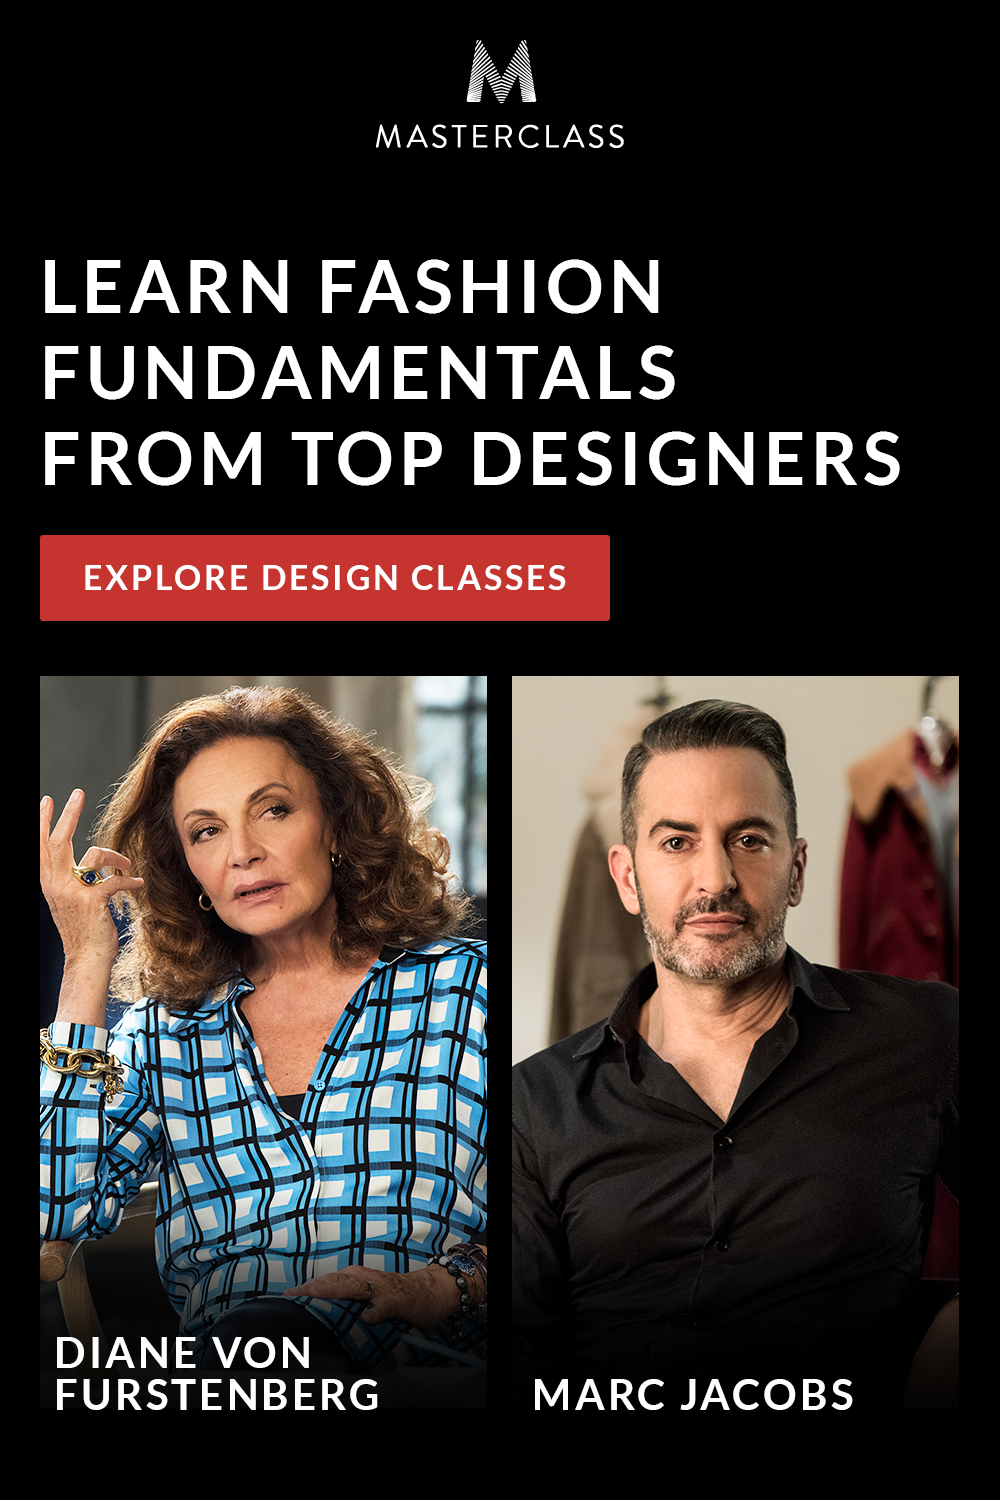 Online Classes Taught By Fashion Icons Marc Jacobs And Diane Von Furstenberg Master Class Online Classes Top Design Fashion